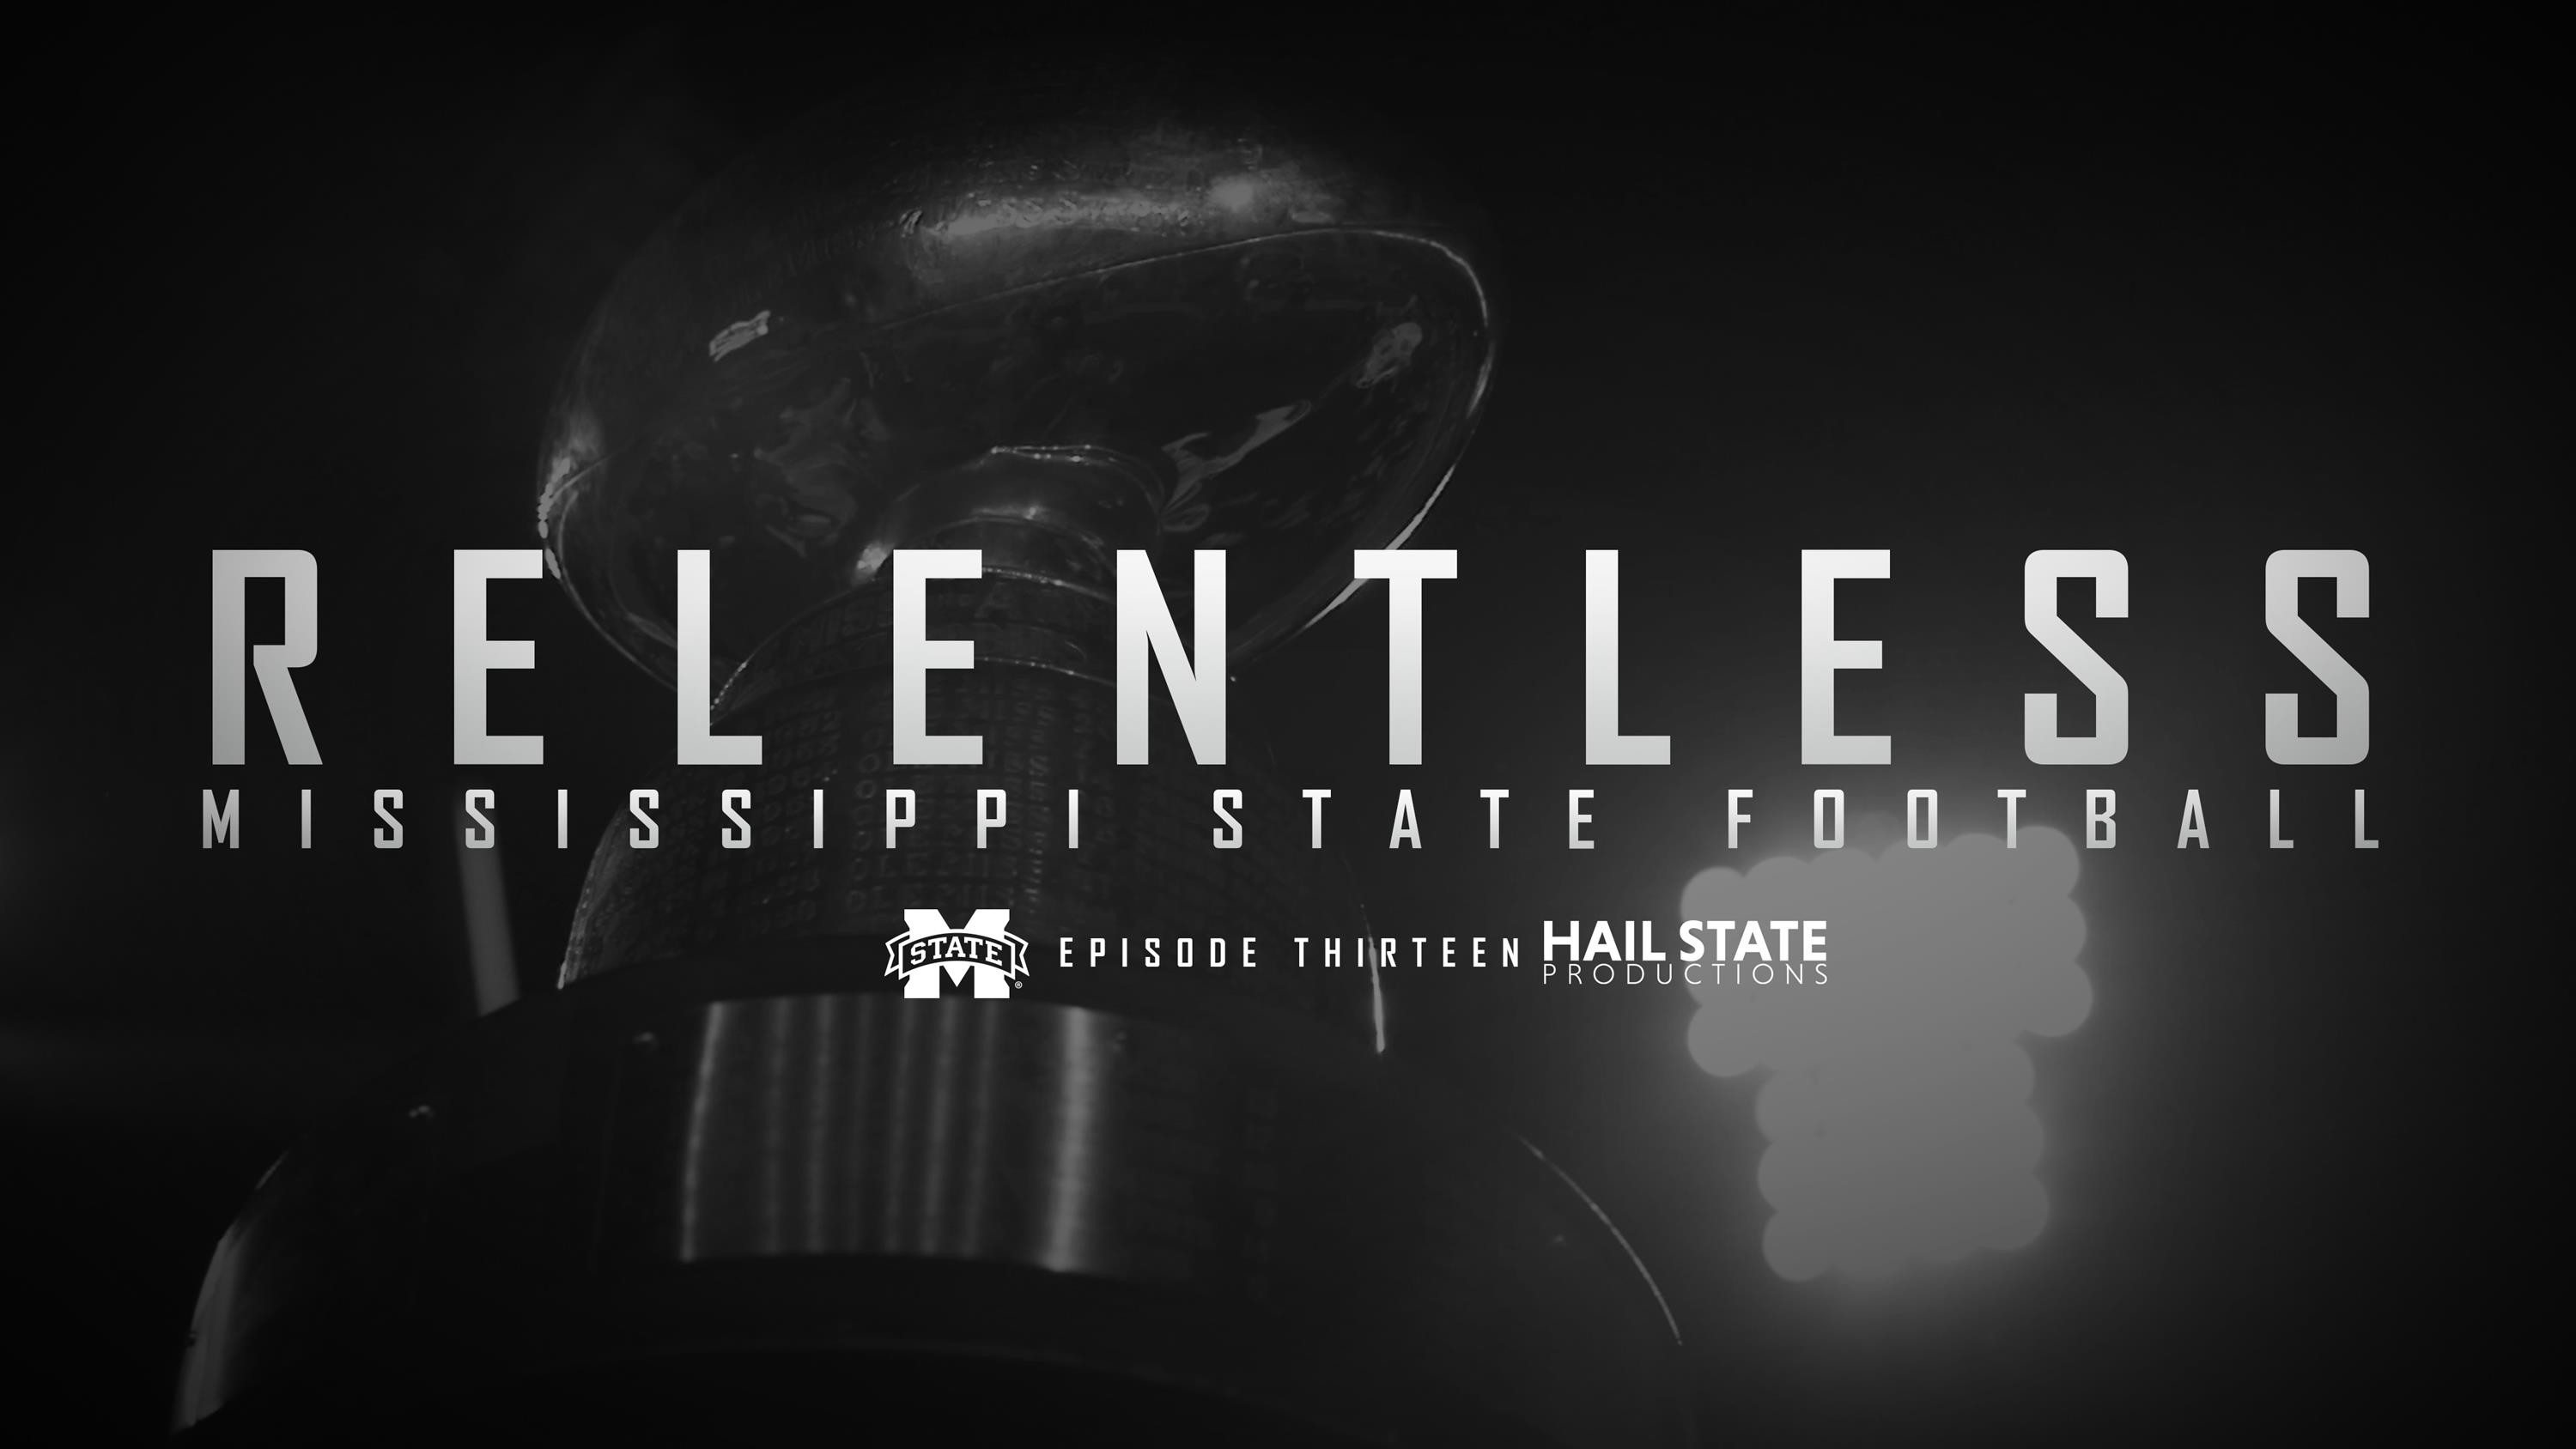 """""""Relentless"""" MSU Football Episode XIII Now Available On Demand"""